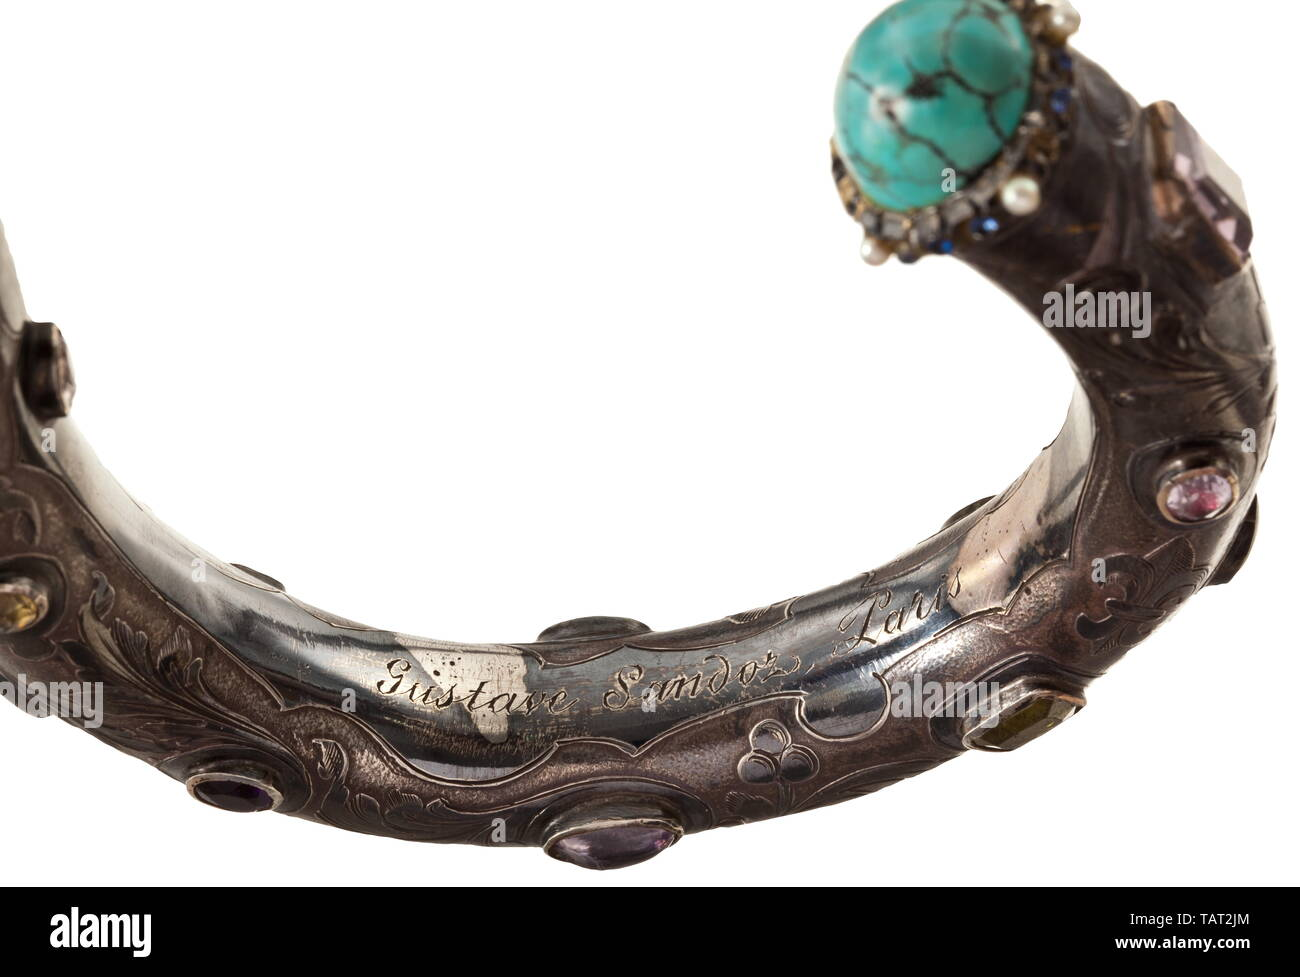 """Sandoz, Gustave (1836 - 1891) - a walking stick handle set with gems, Silver grip with raised, etched floral tendrils, the entire surface decorated with set gems and pearls, silversmith's mark, on the inside engraved signature """"Gustave Sandoz Paris"""". Length 22.5 cm. Weight 163 g. Gustave Sandoz, French watchmaker and jeweller, was born in Paris on 11 September 1836. His father was a watchmaker of Swiss descent from the area of Neuchatel. At the age of 13 Jacques-Gustave began his apprenticeship with the then well-known watchmaker Perusset. In 185, Additional-Rights-Clearance-Info-Not-Available Stock Photo"""